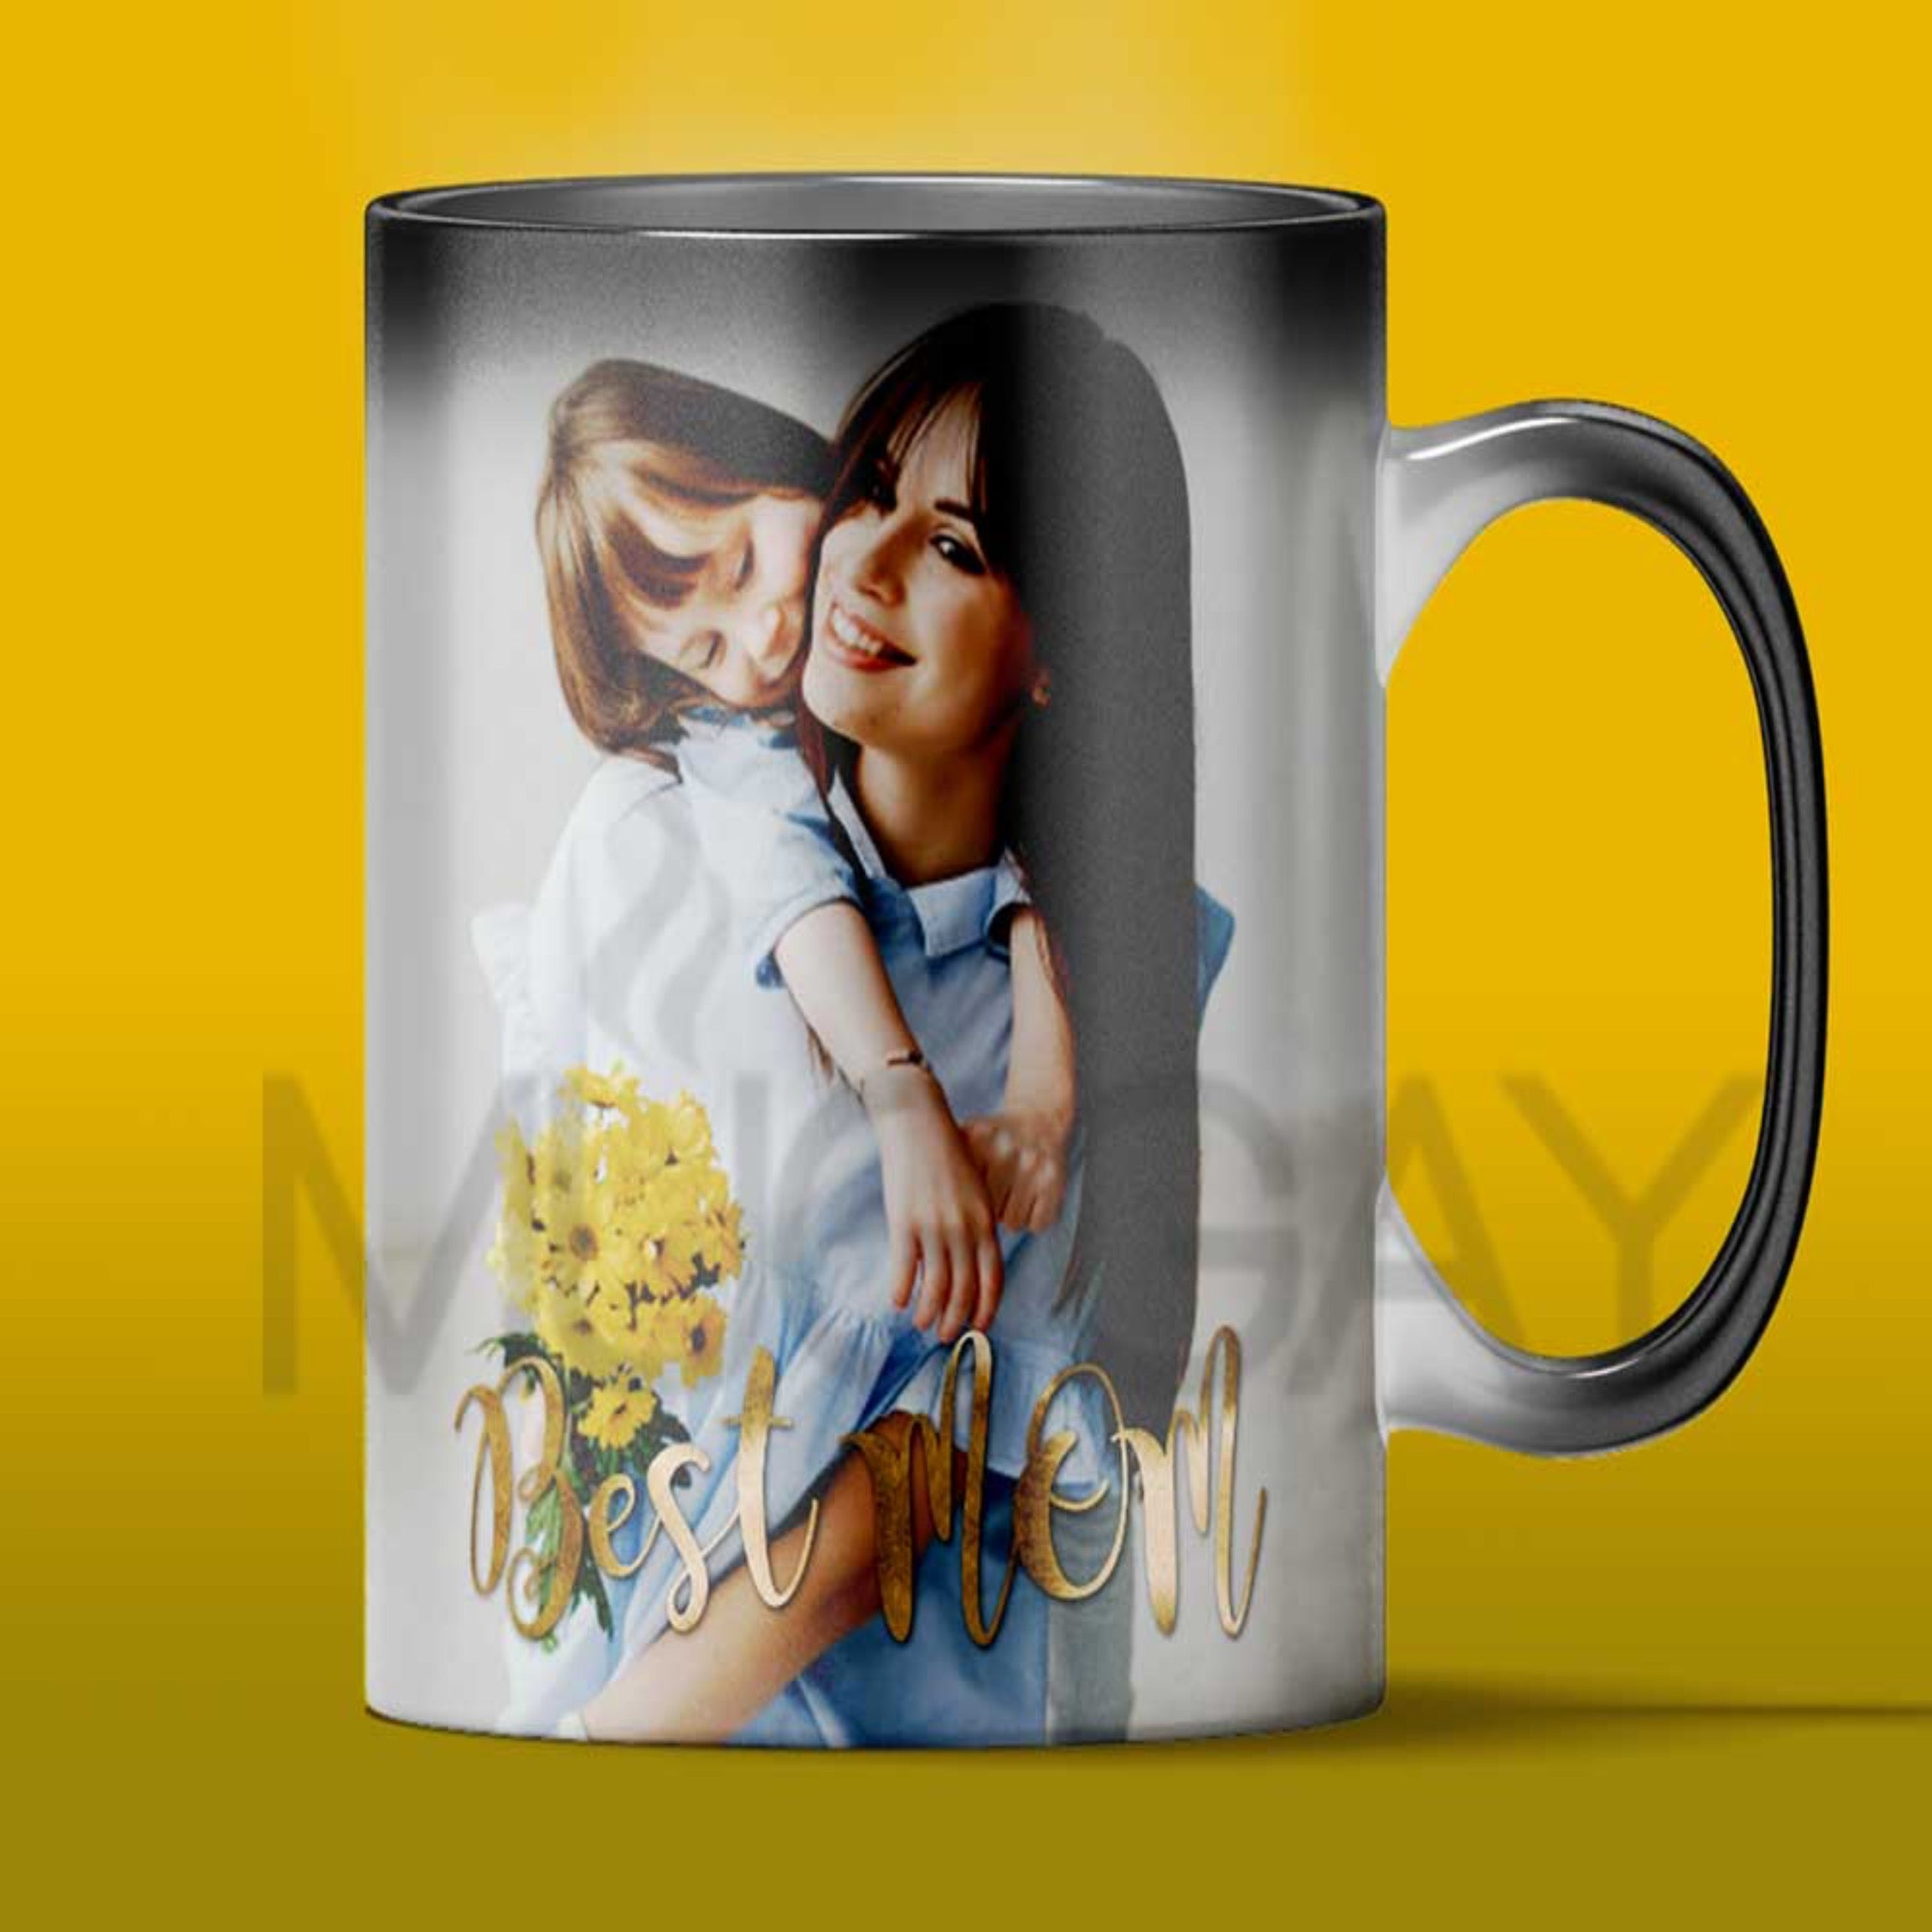 Best Mom - Magic mug - Add your picture